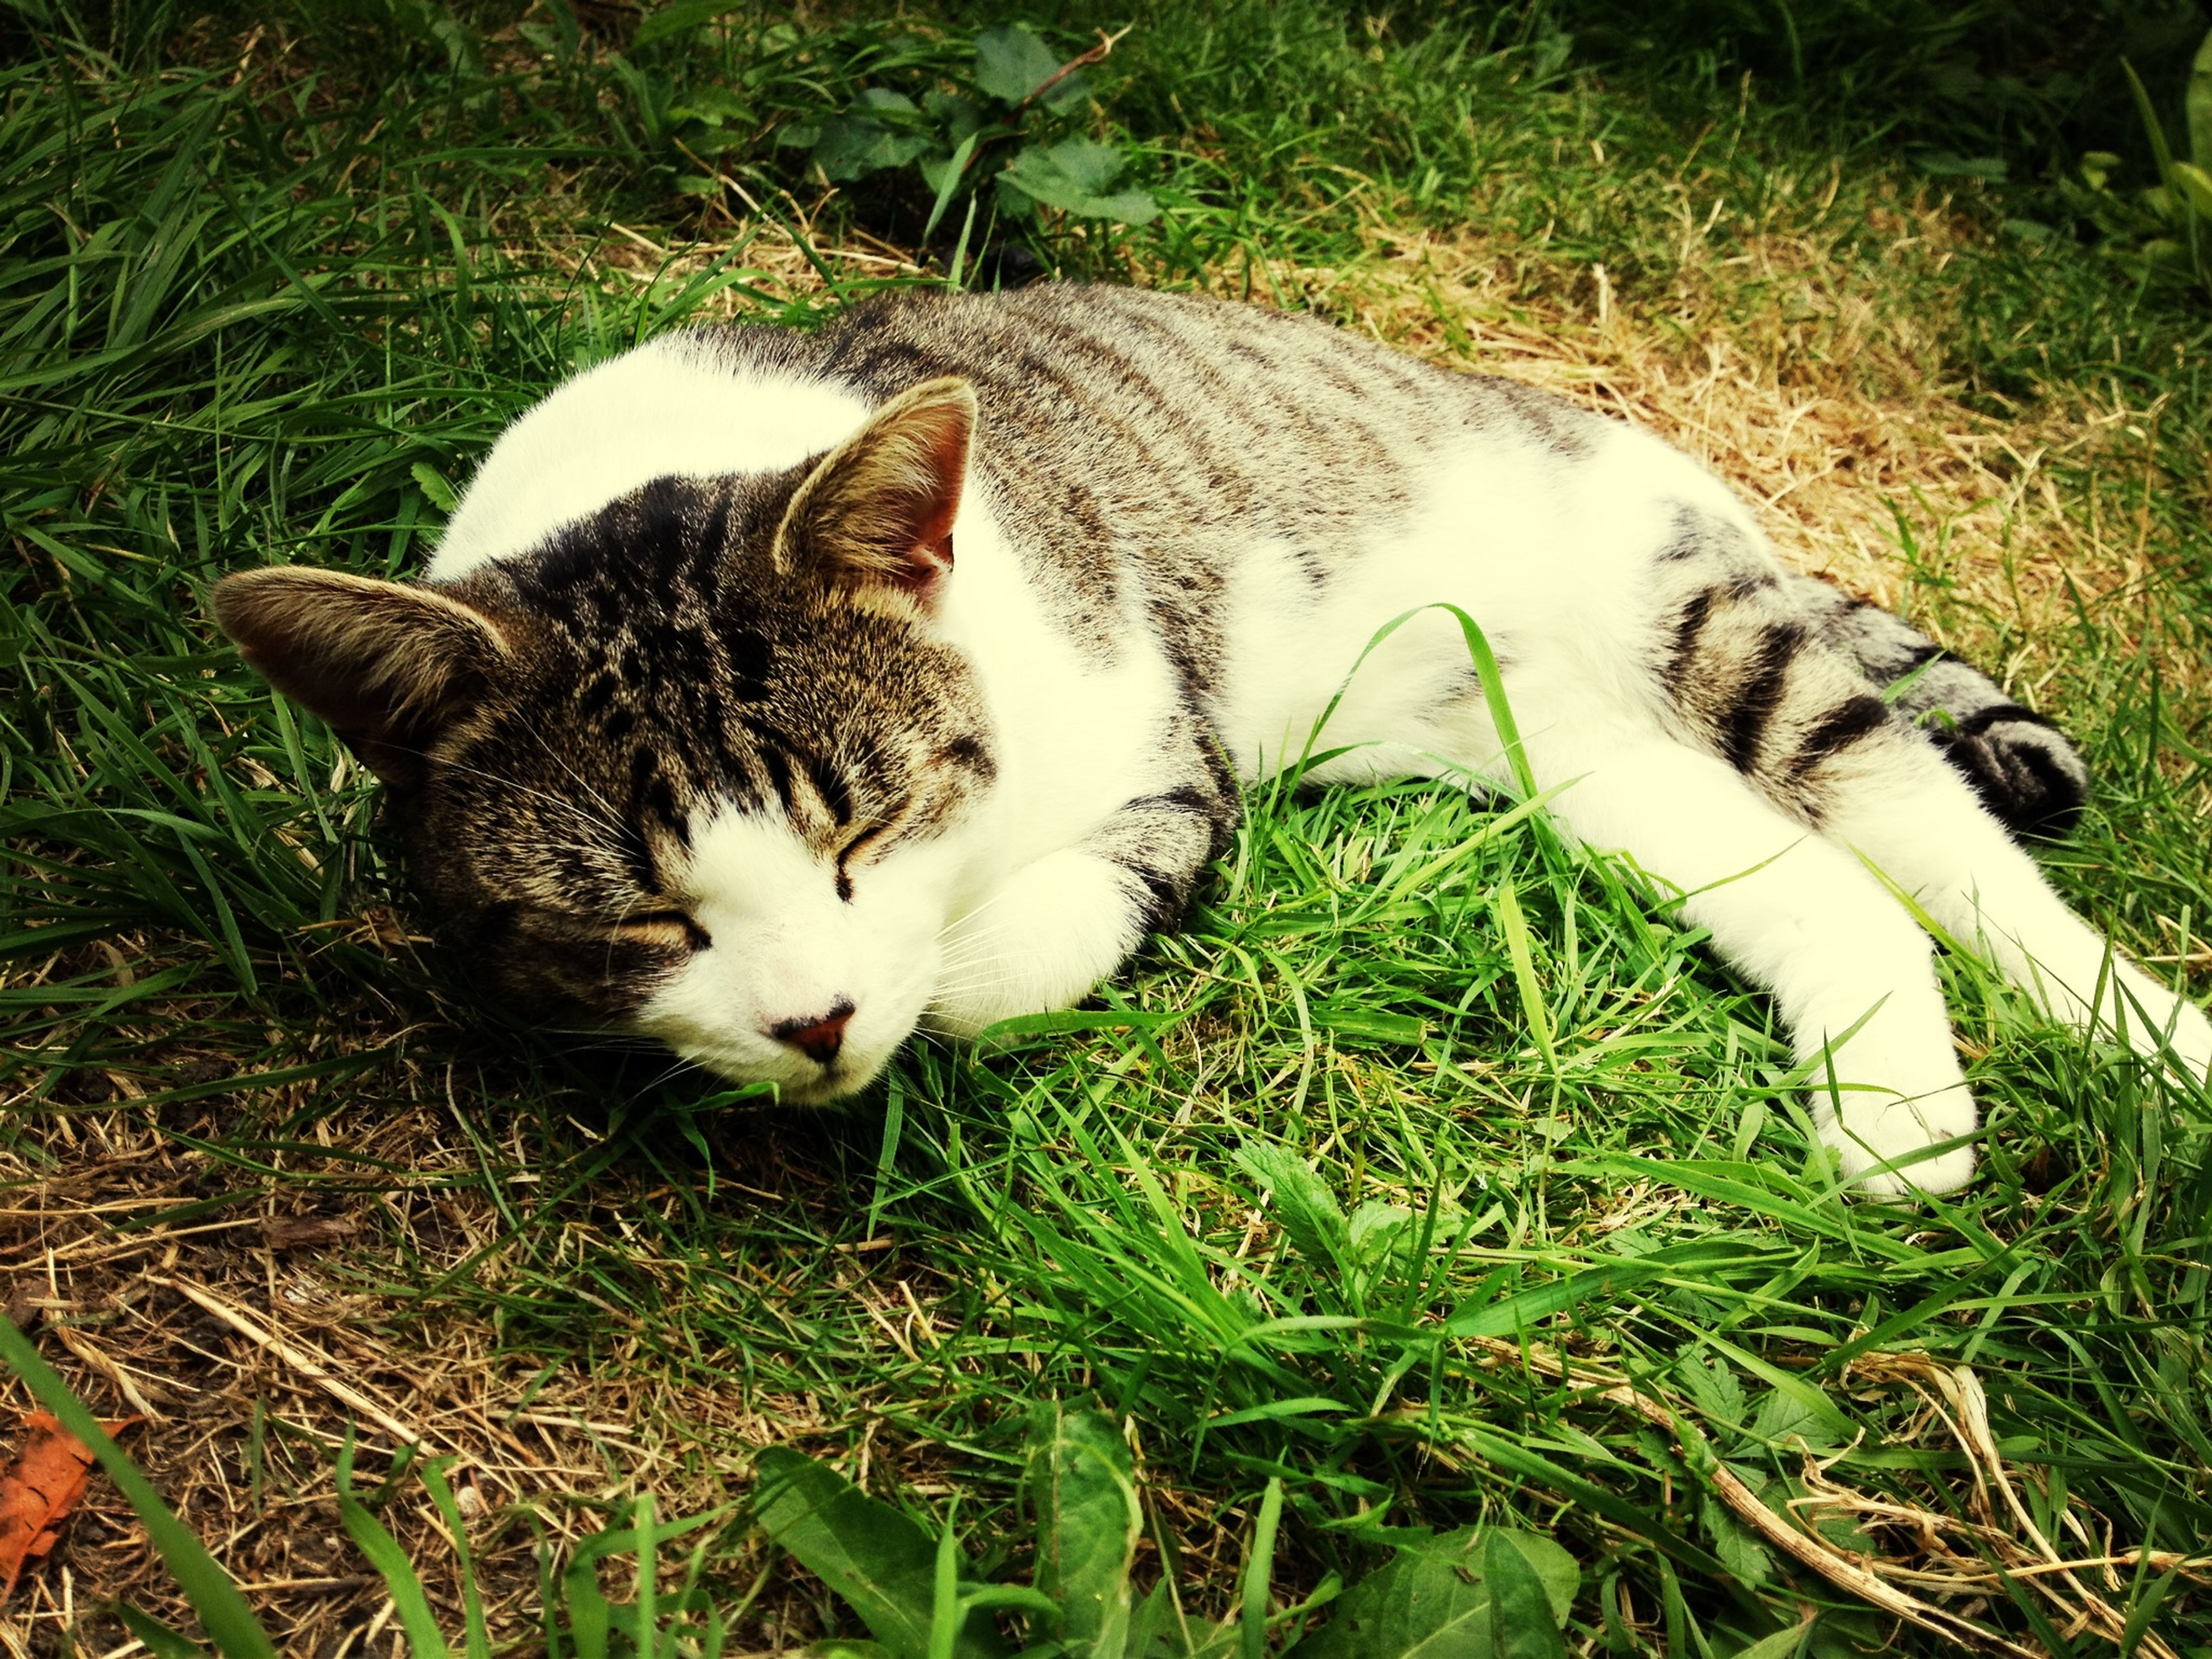 domestic animals, pets, domestic cat, animal themes, one animal, mammal, grass, cat, feline, grassy, field, relaxation, lying down, high angle view, resting, whisker, plant, day, white color, no people